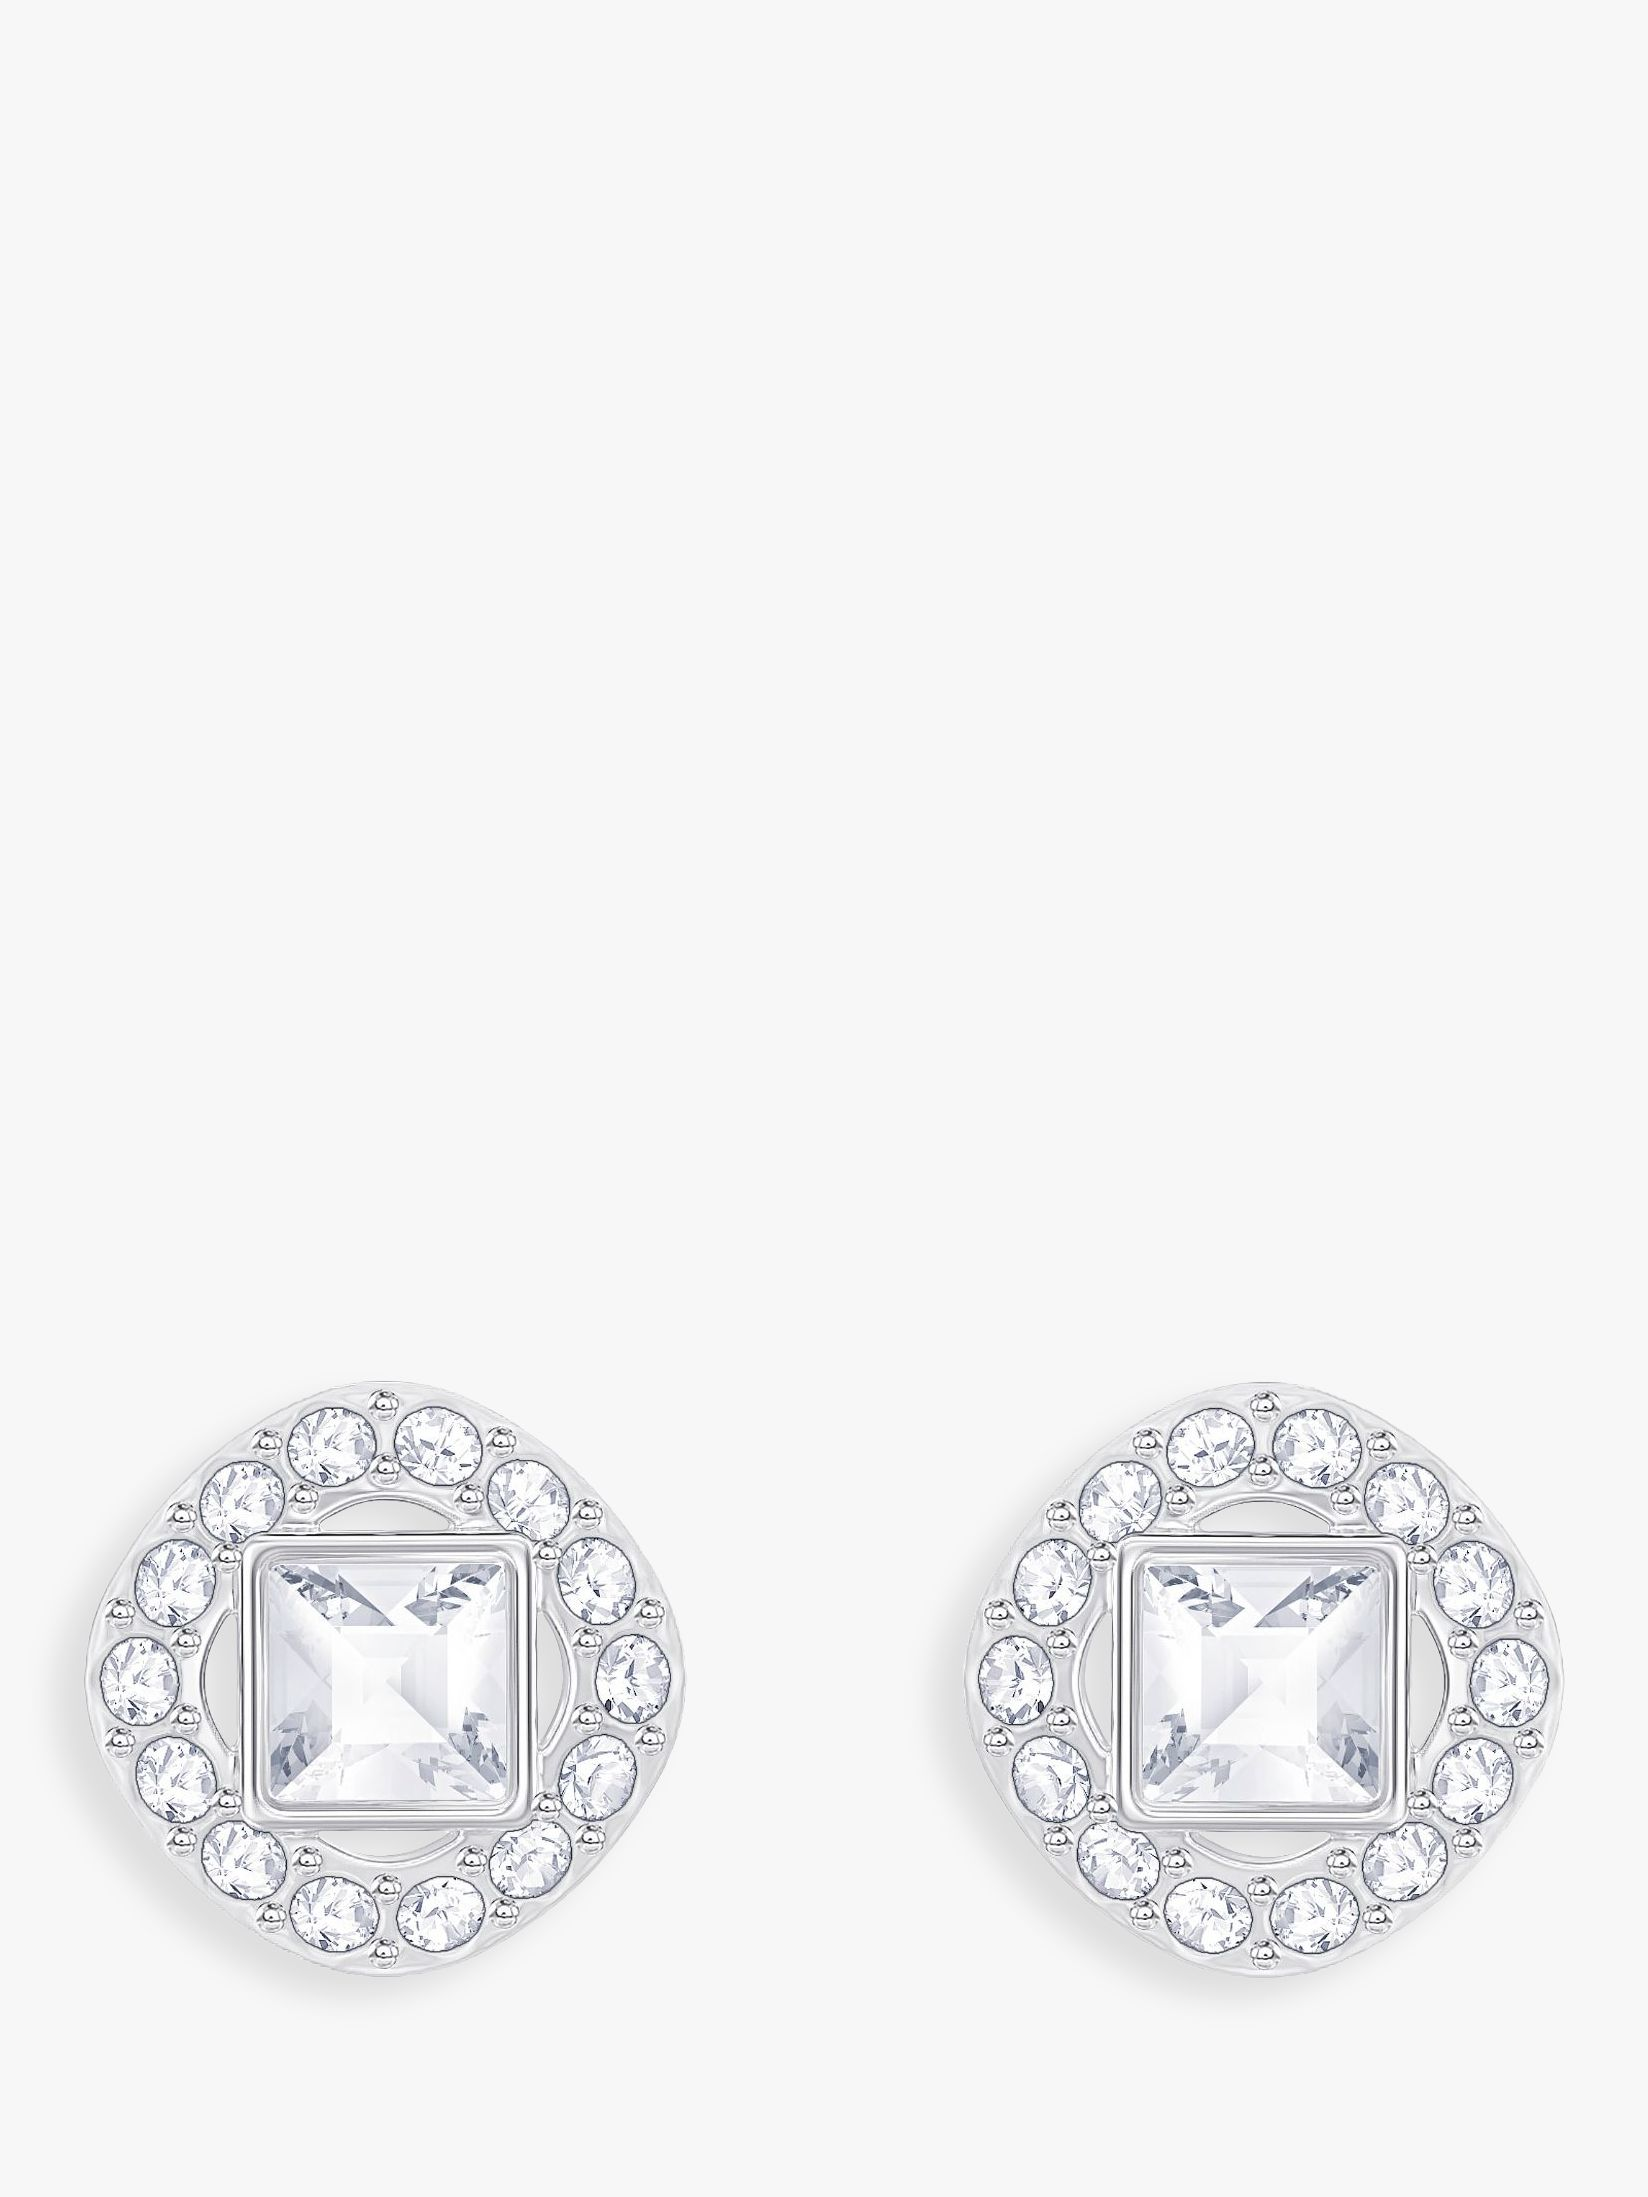 Swarovski Swarovski Angelic Square Crystal Stud Earrings, Silver/Clear